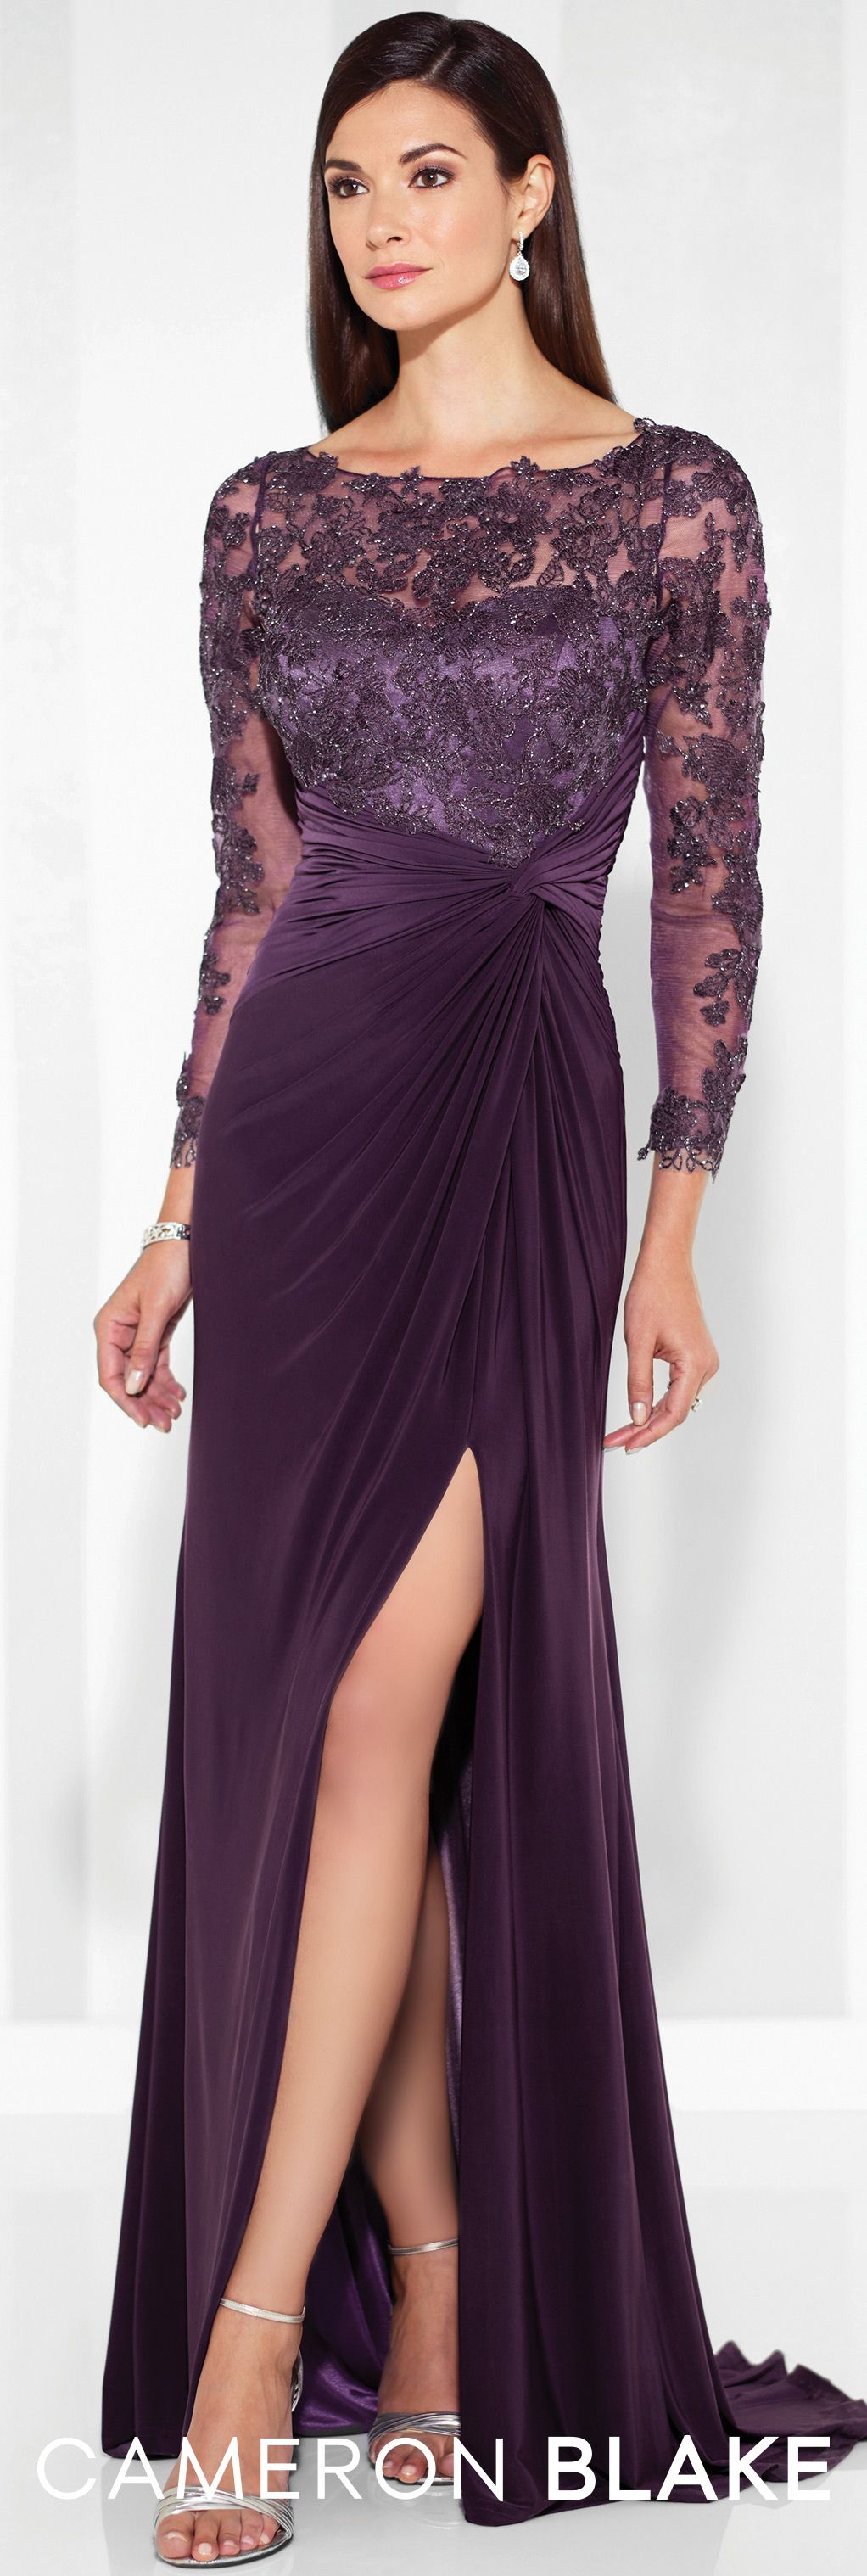 117613 | Purple evening dress, Formal evening gowns and Illusions